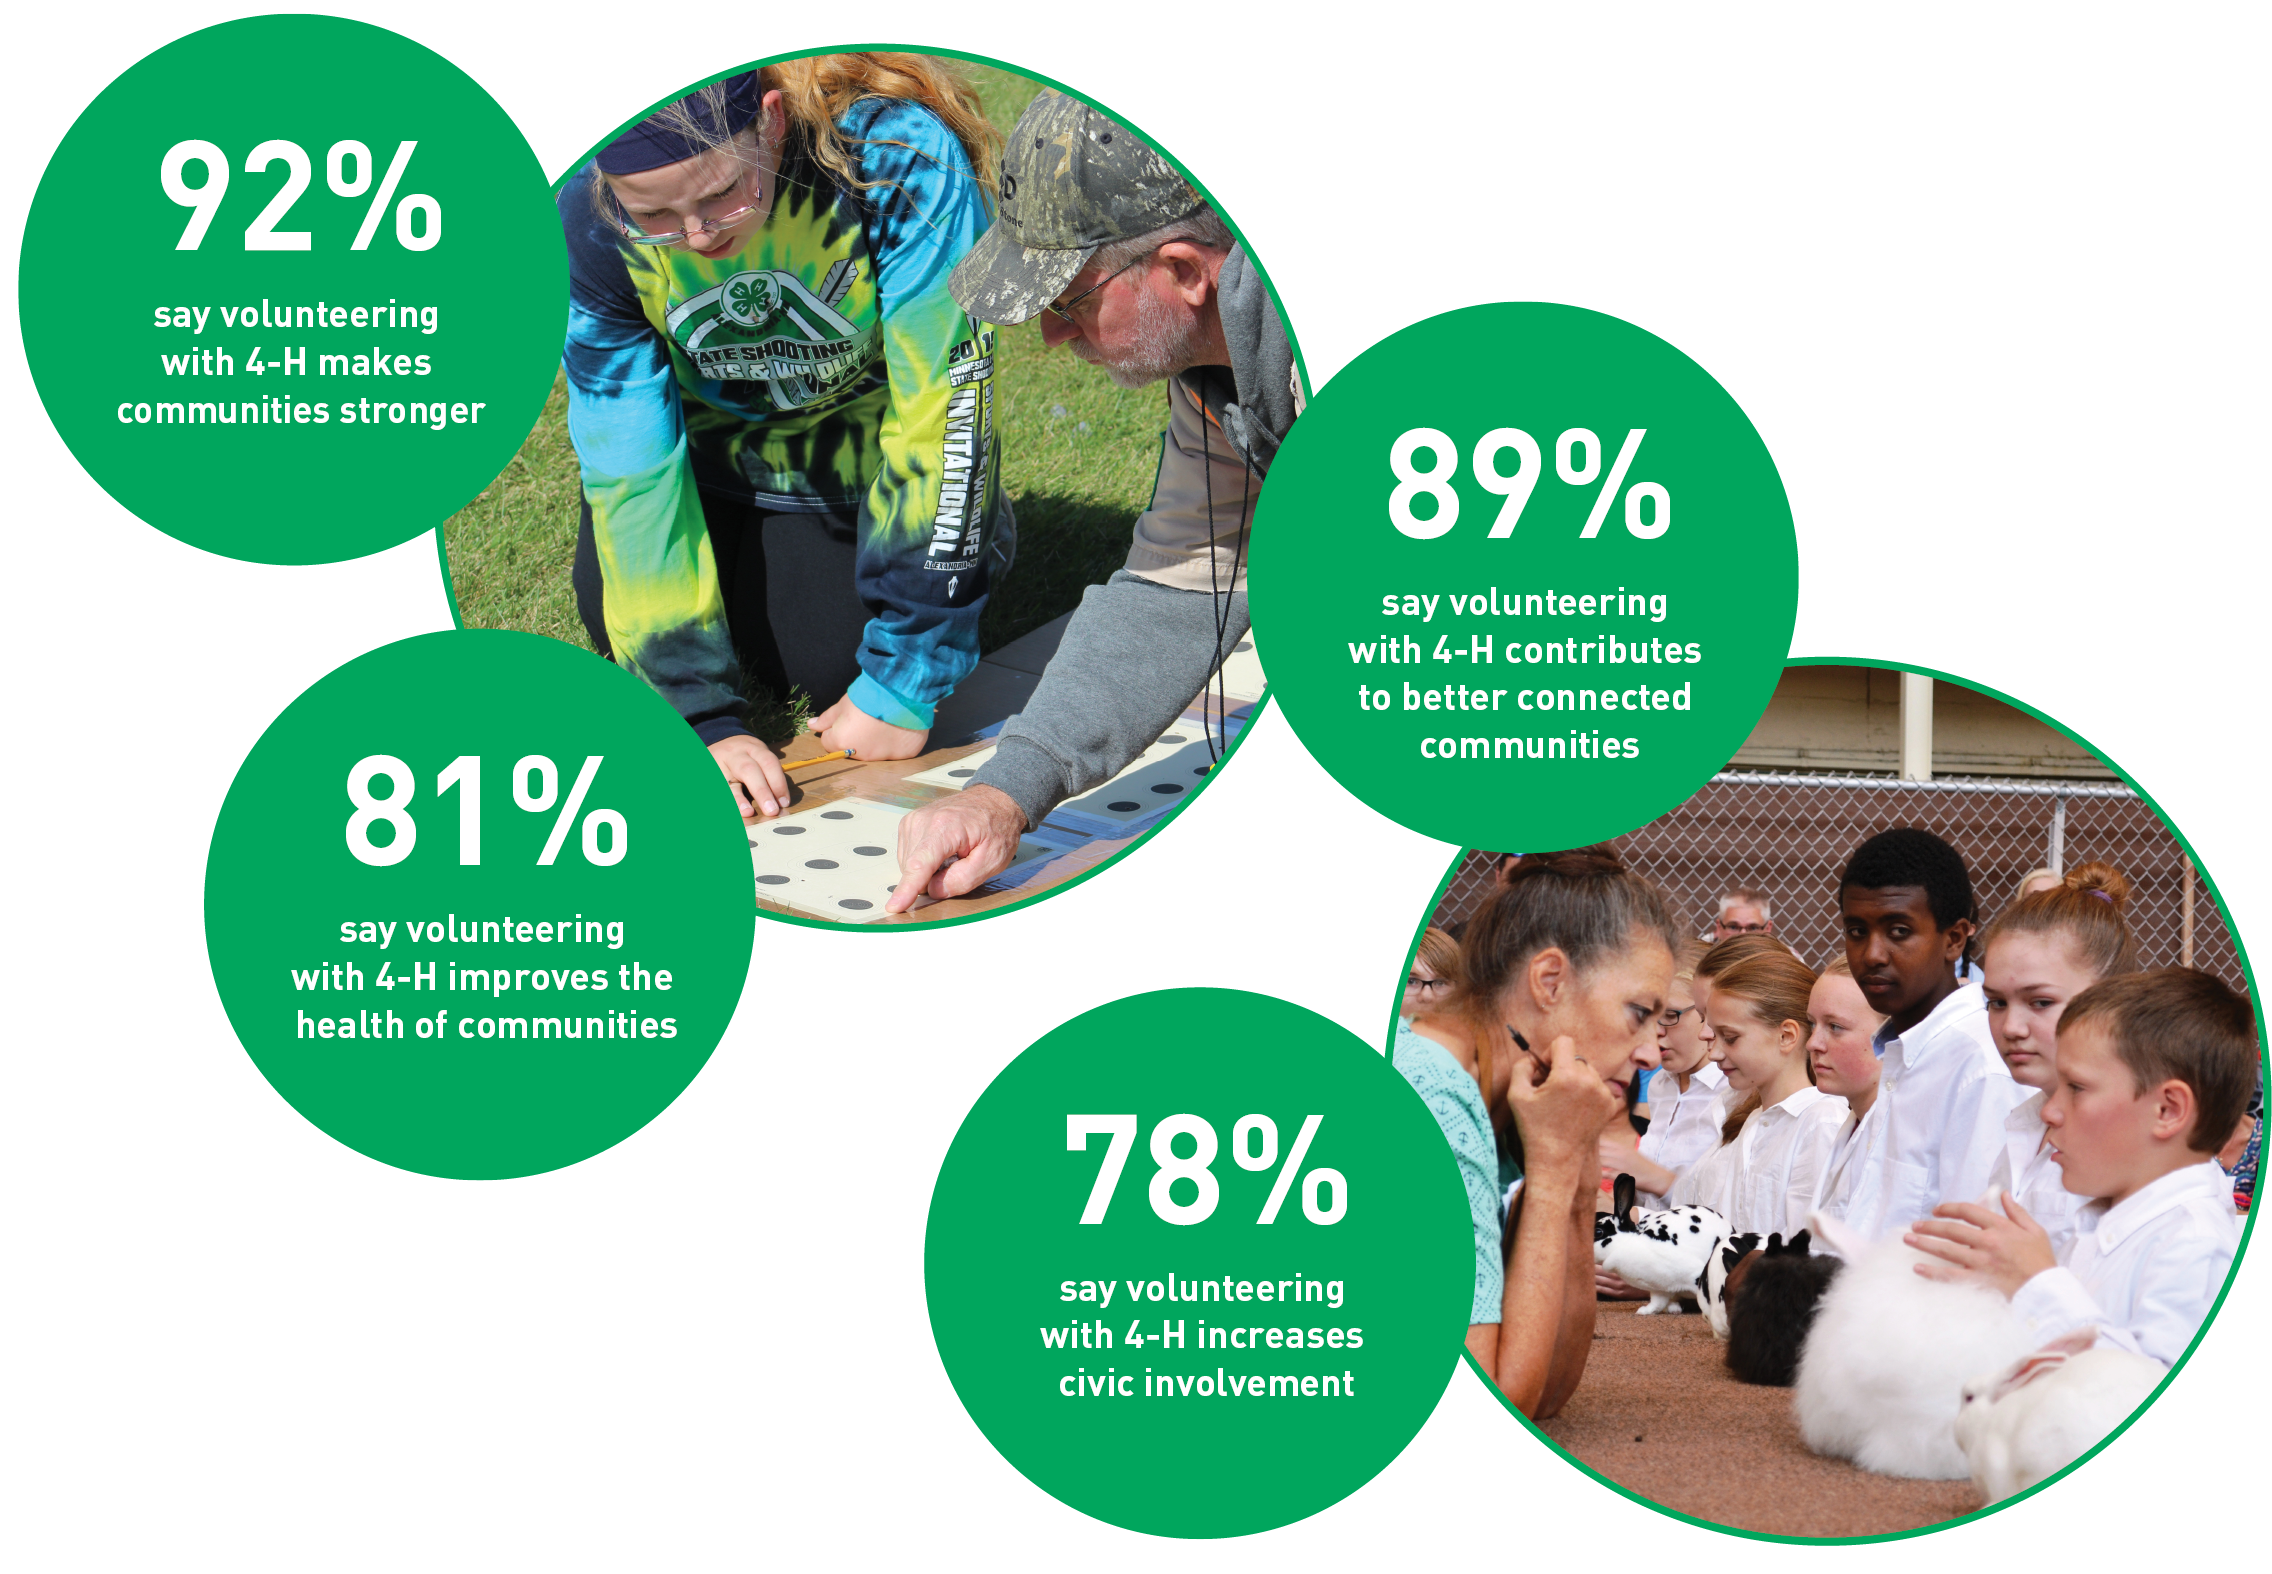 92% say volunteering makes communities stronger, 81% say improves health of communities, 89%  contributes to better connected communities, 78% increases civic involvement